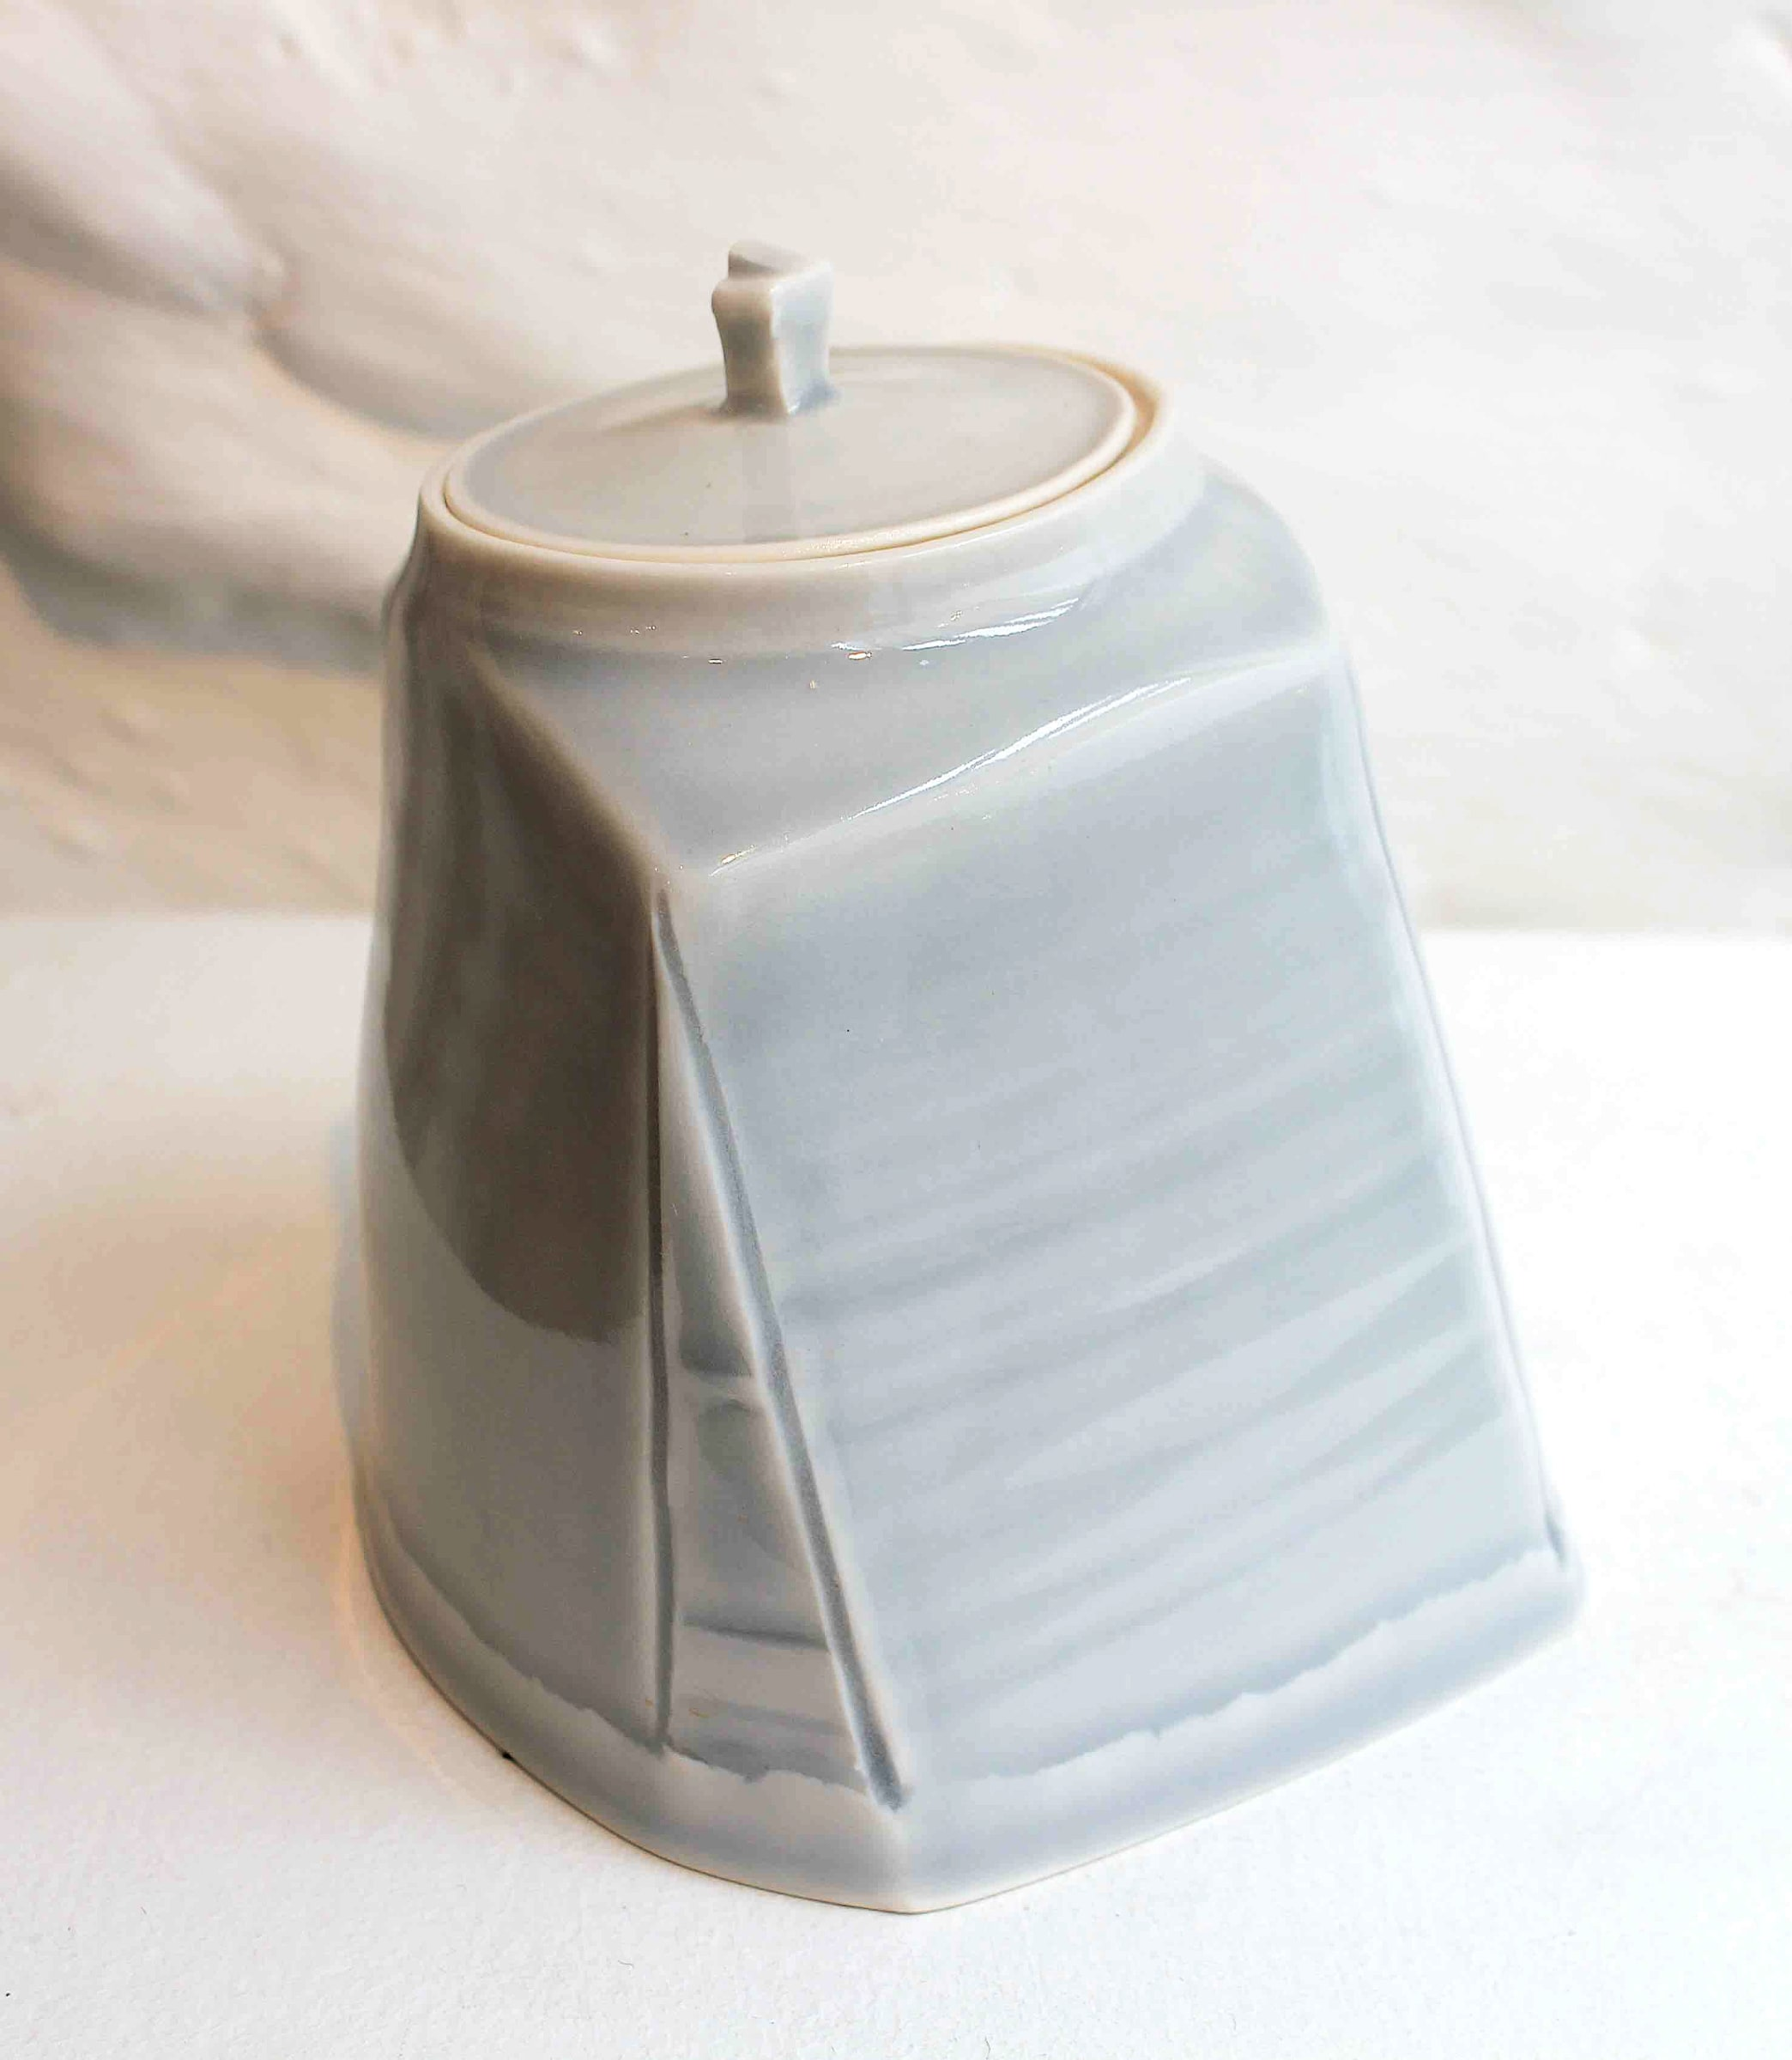 """<span class=""""link fancybox-details-link""""><a href=""""/artists/99-carina-ciscato/works/5765-carina-ciscato-pale-grey-blue-lidded-pot-2018/"""">View Detail Page</a></span><div class=""""artist""""><strong>Carina Ciscato</strong></div> b. 1970 <div class=""""title""""><em>Pale Grey/Blue Lidded Pot</em>, 2018</div> <div class=""""signed_and_dated"""">porcelain</div> <div class=""""medium"""">porcelain</div> <div class=""""dimensions"""">12 x 10 cm<br /> 4 3/4 x 4 inches</div><div class=""""price"""">£350.00</div><div class=""""copyright_line"""">OwnArt: £35 x 10 Months, 0% APR</div>"""